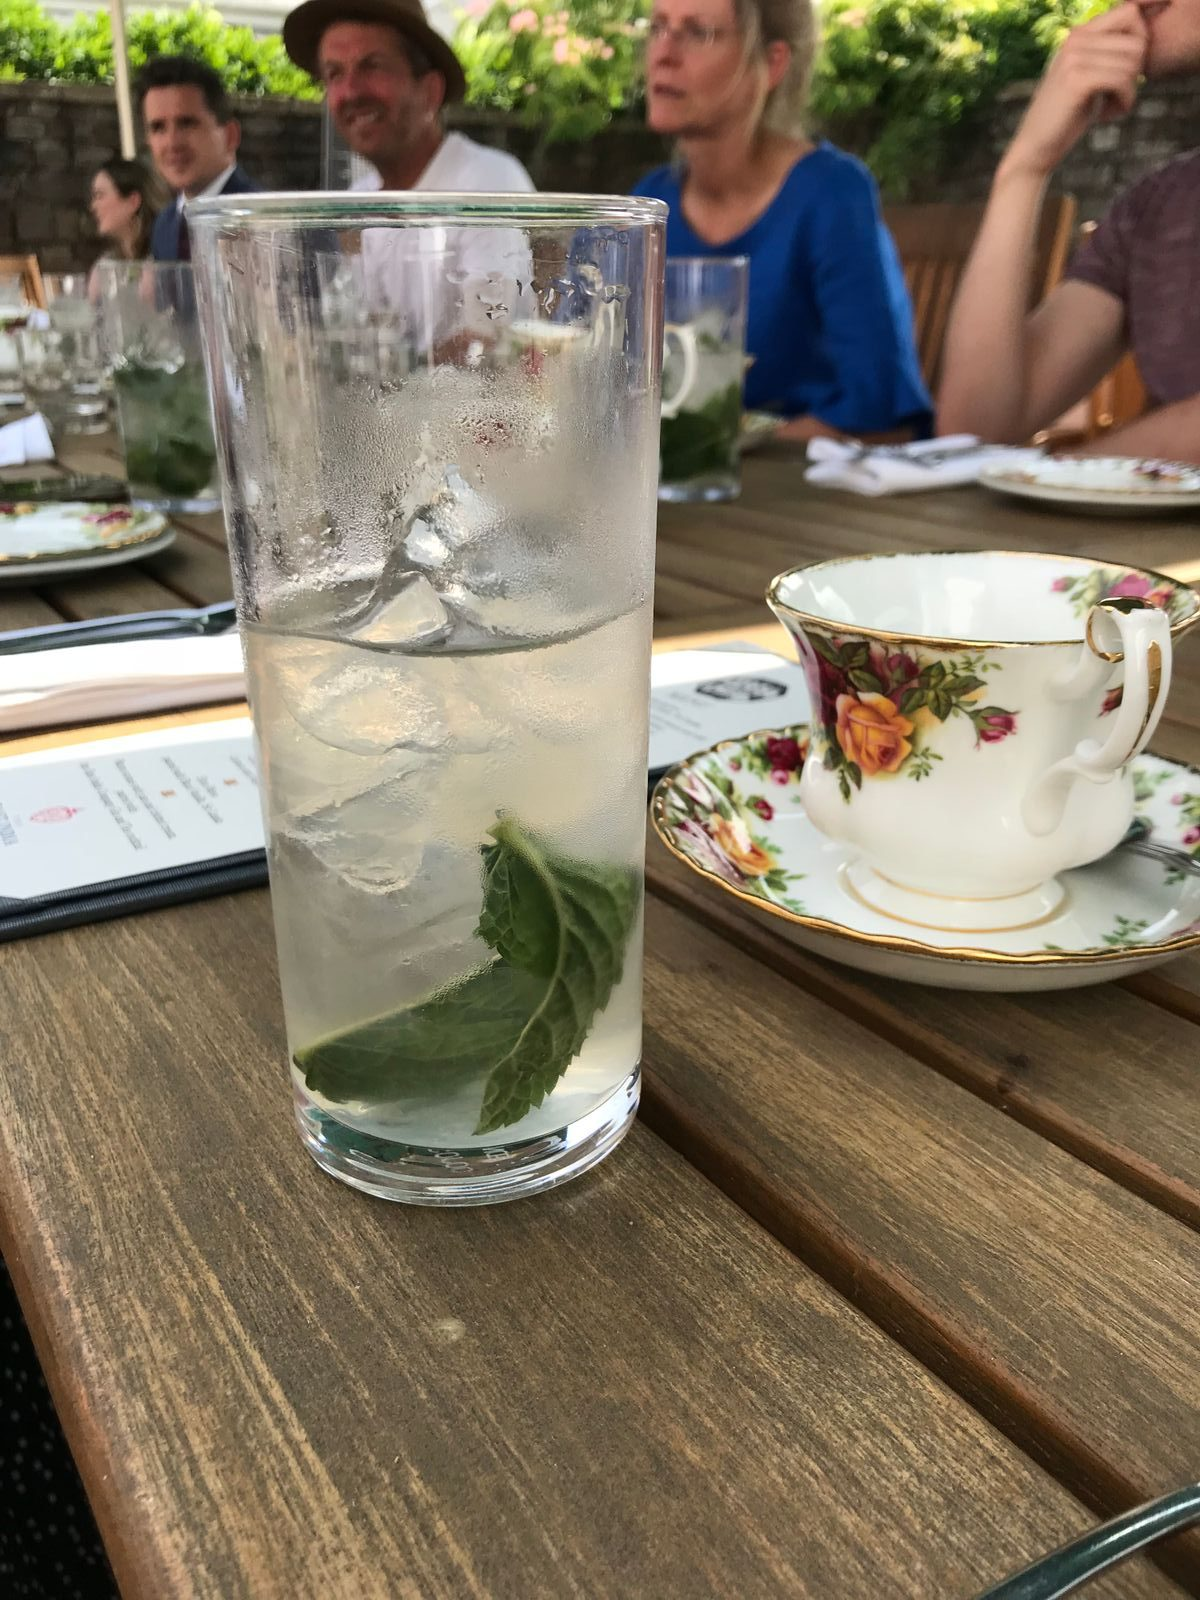 East India Company Green Tea cooler at The Angel Hotel Abergavenny